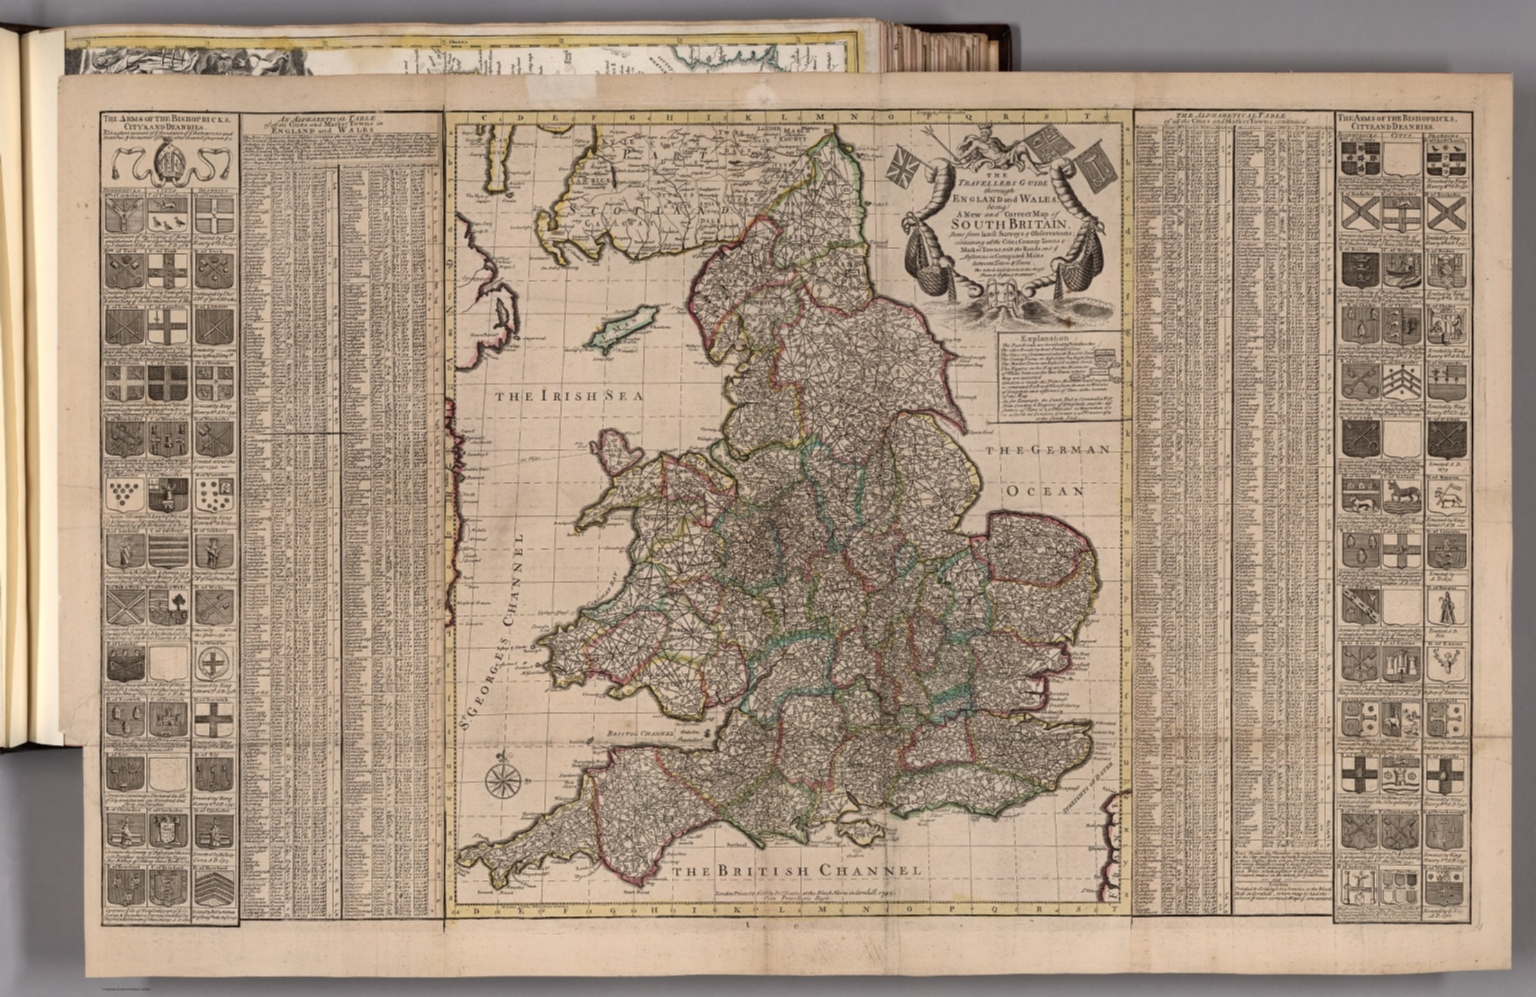 The Travellers Guide thorough England and Wales.